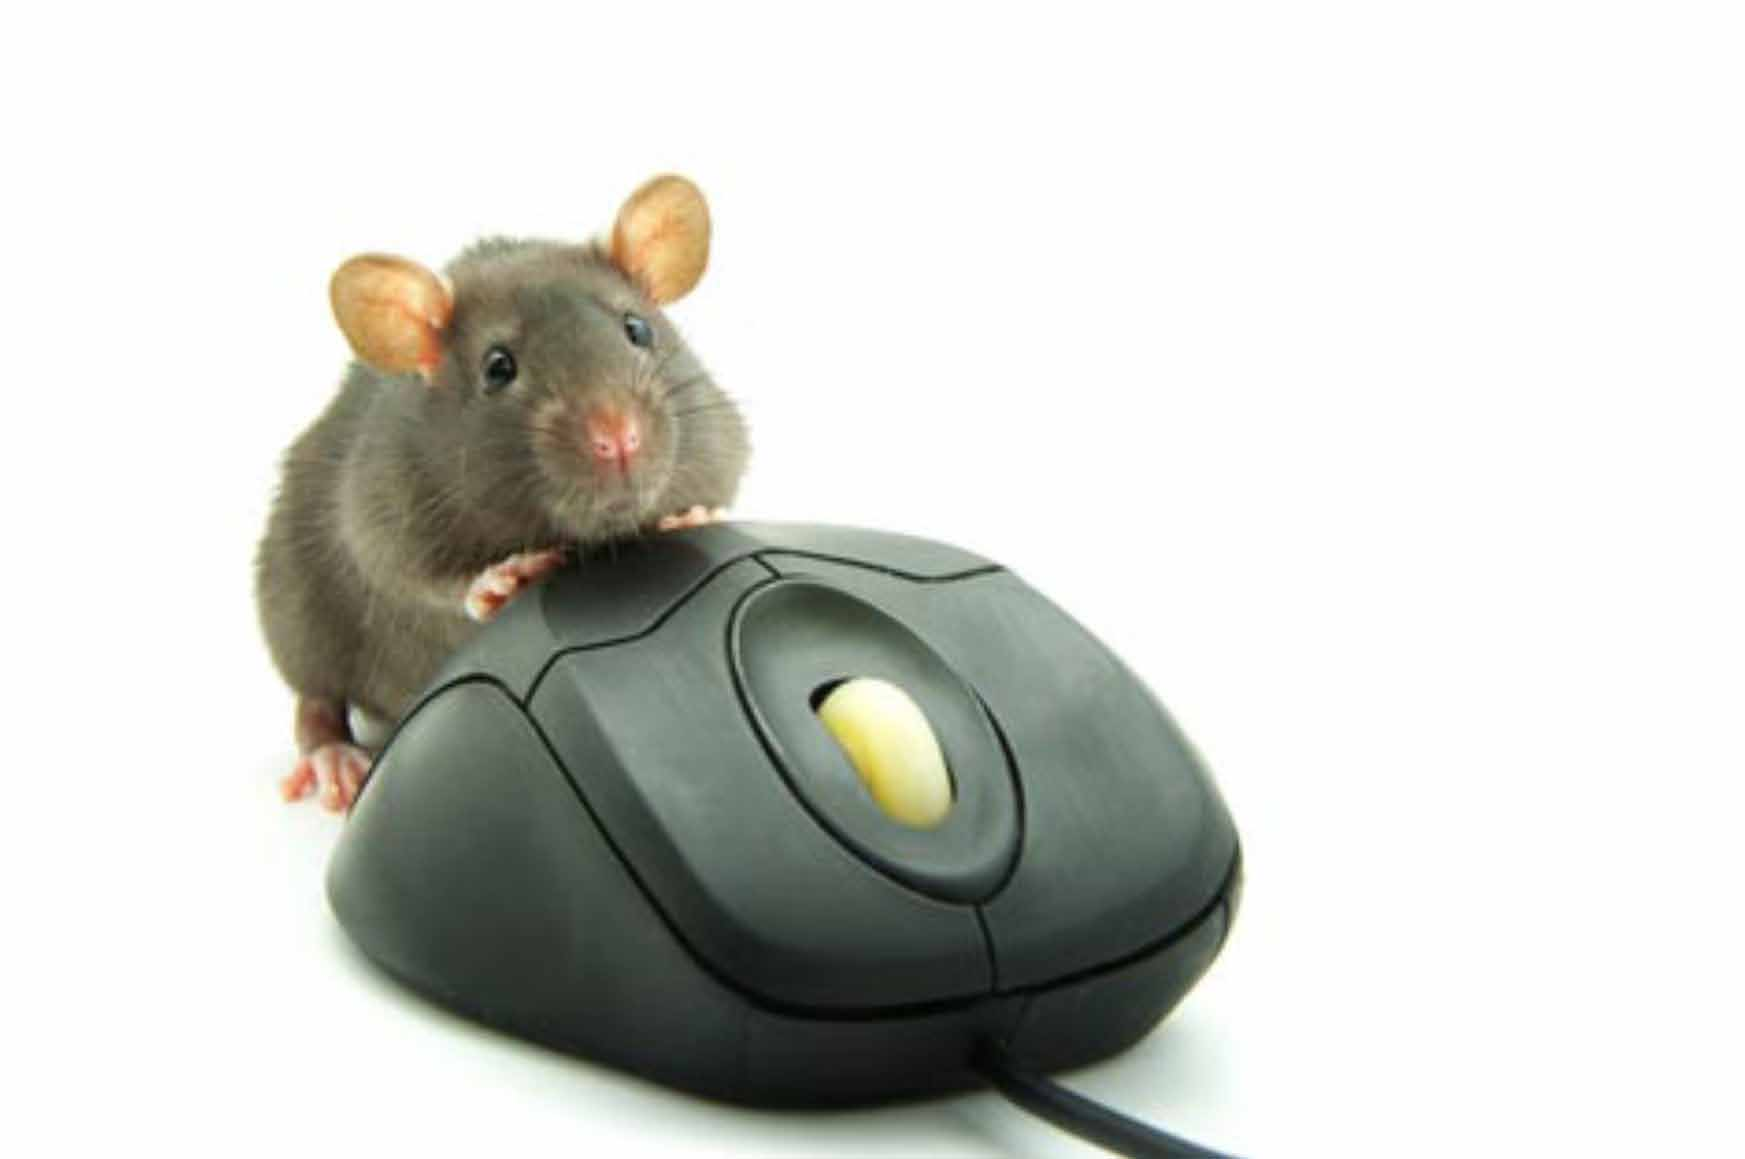 Mouseonmouse